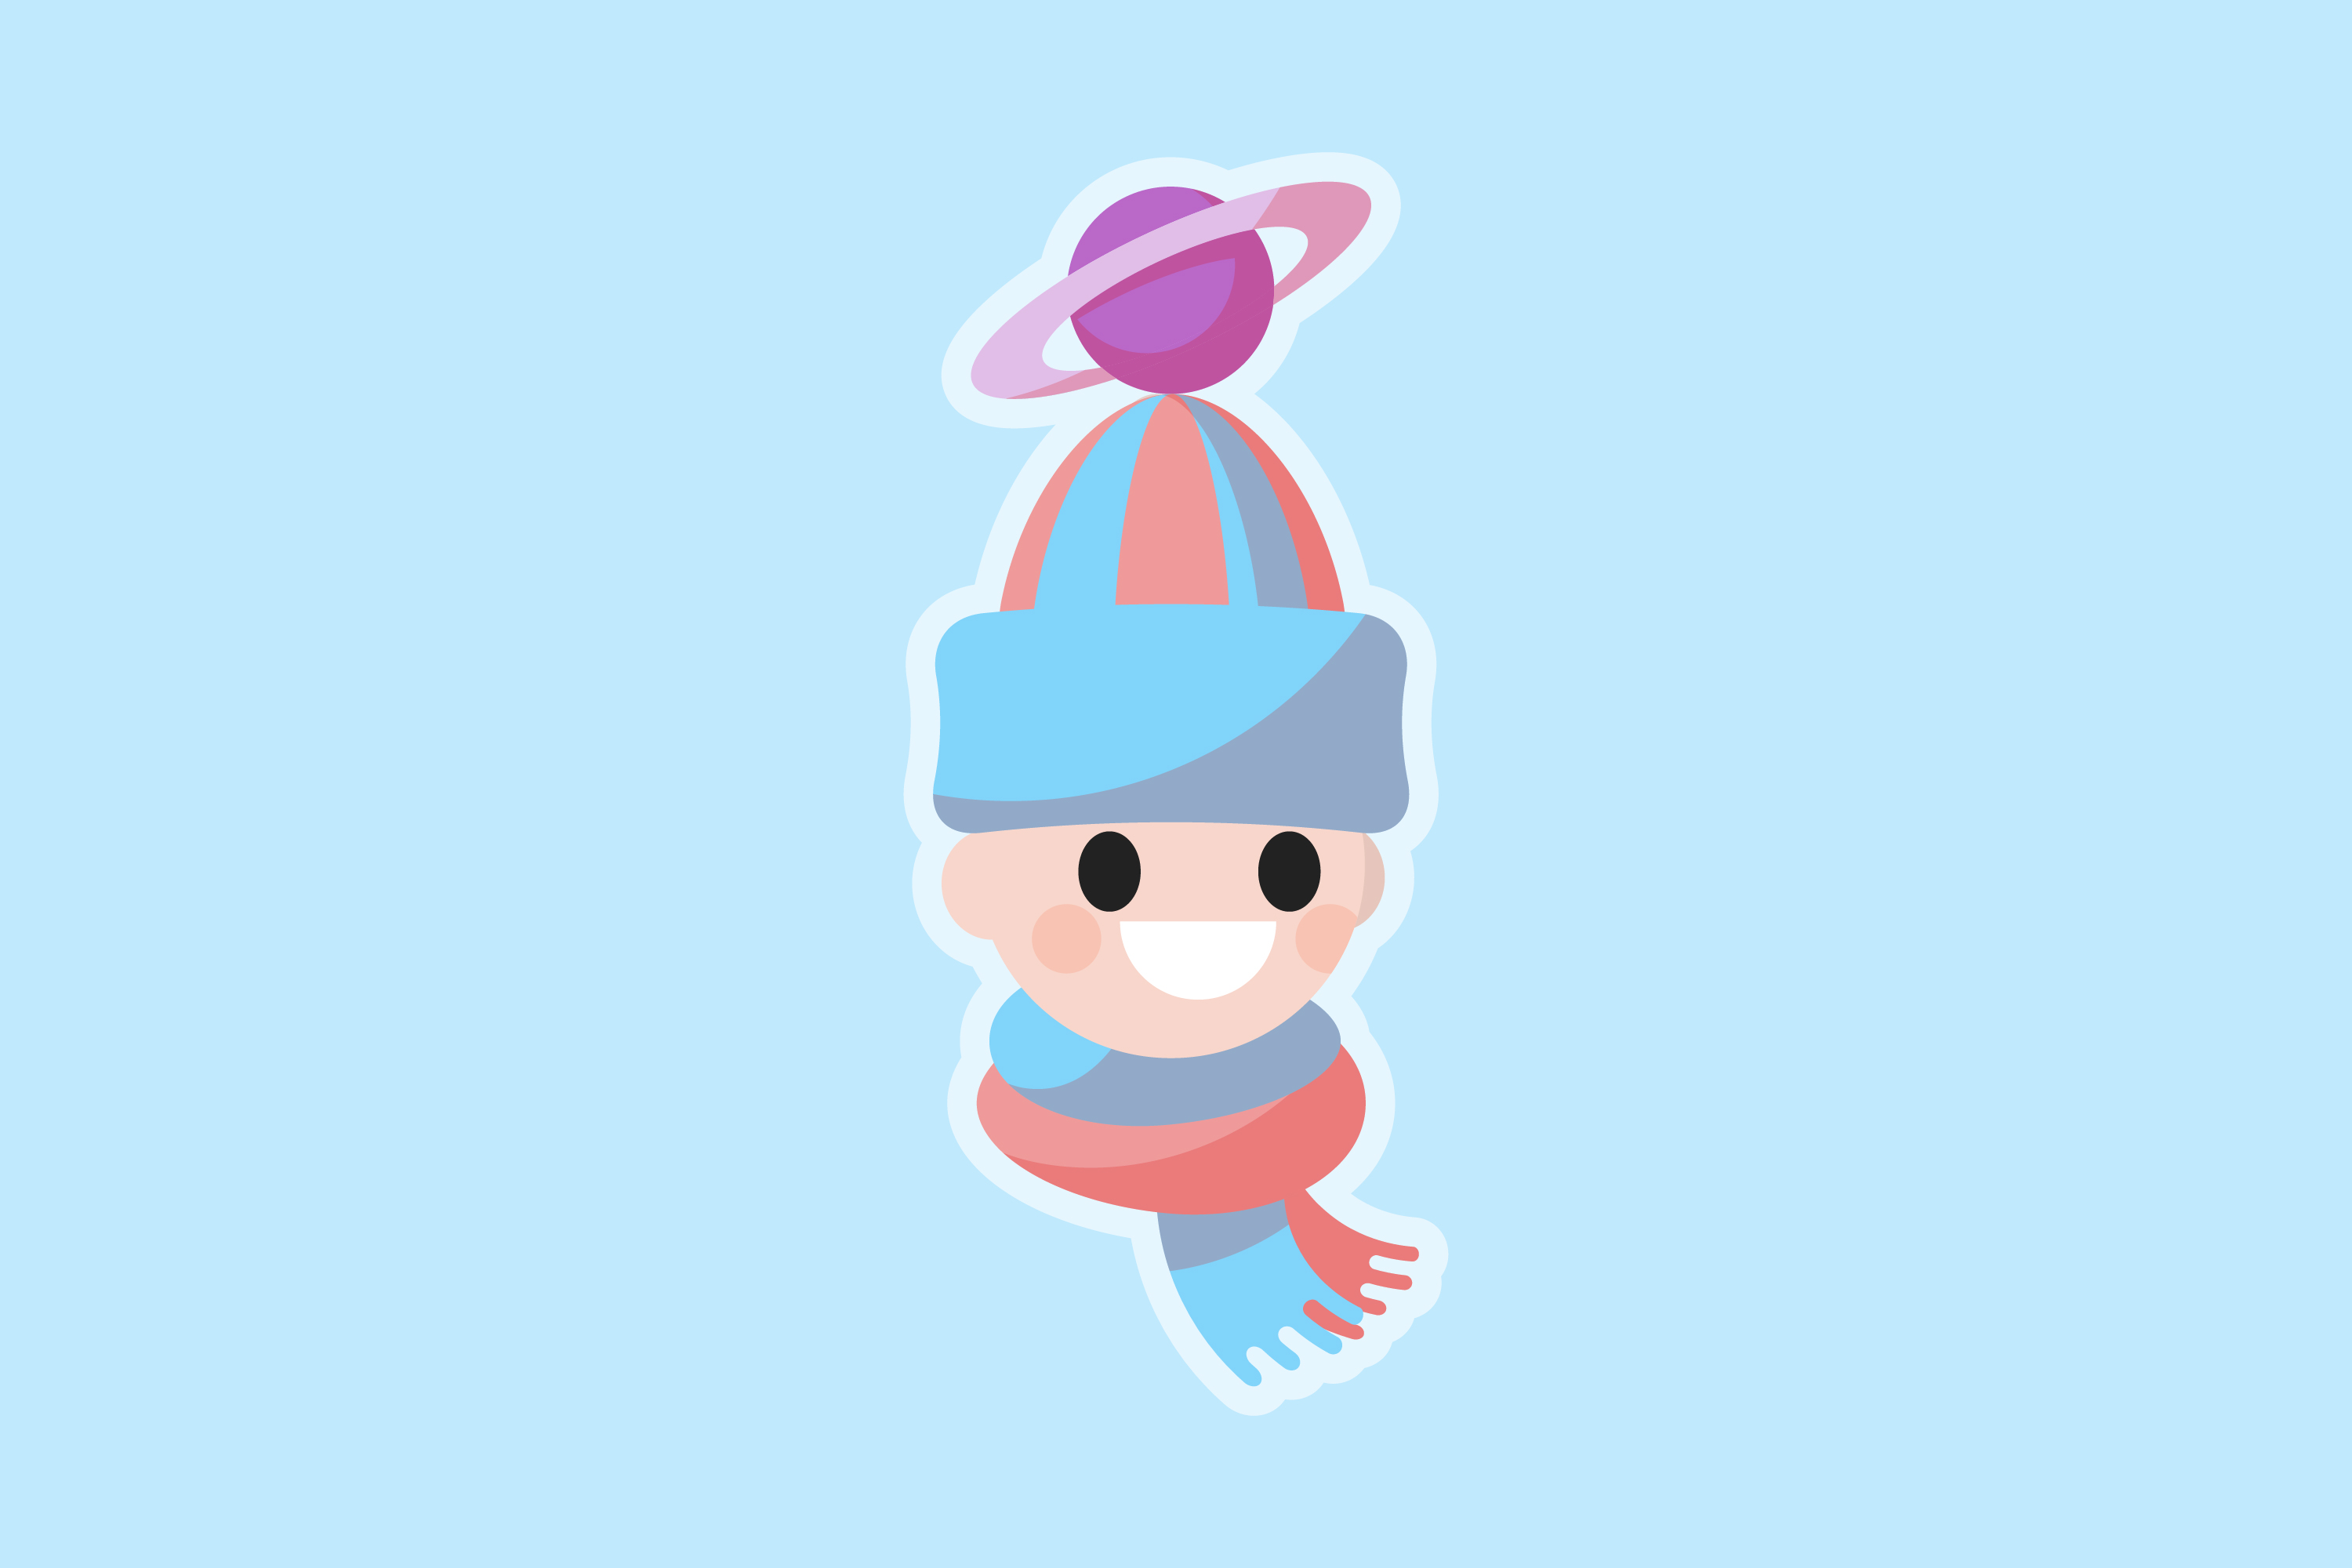 Illustration of Planet Bobble mascot